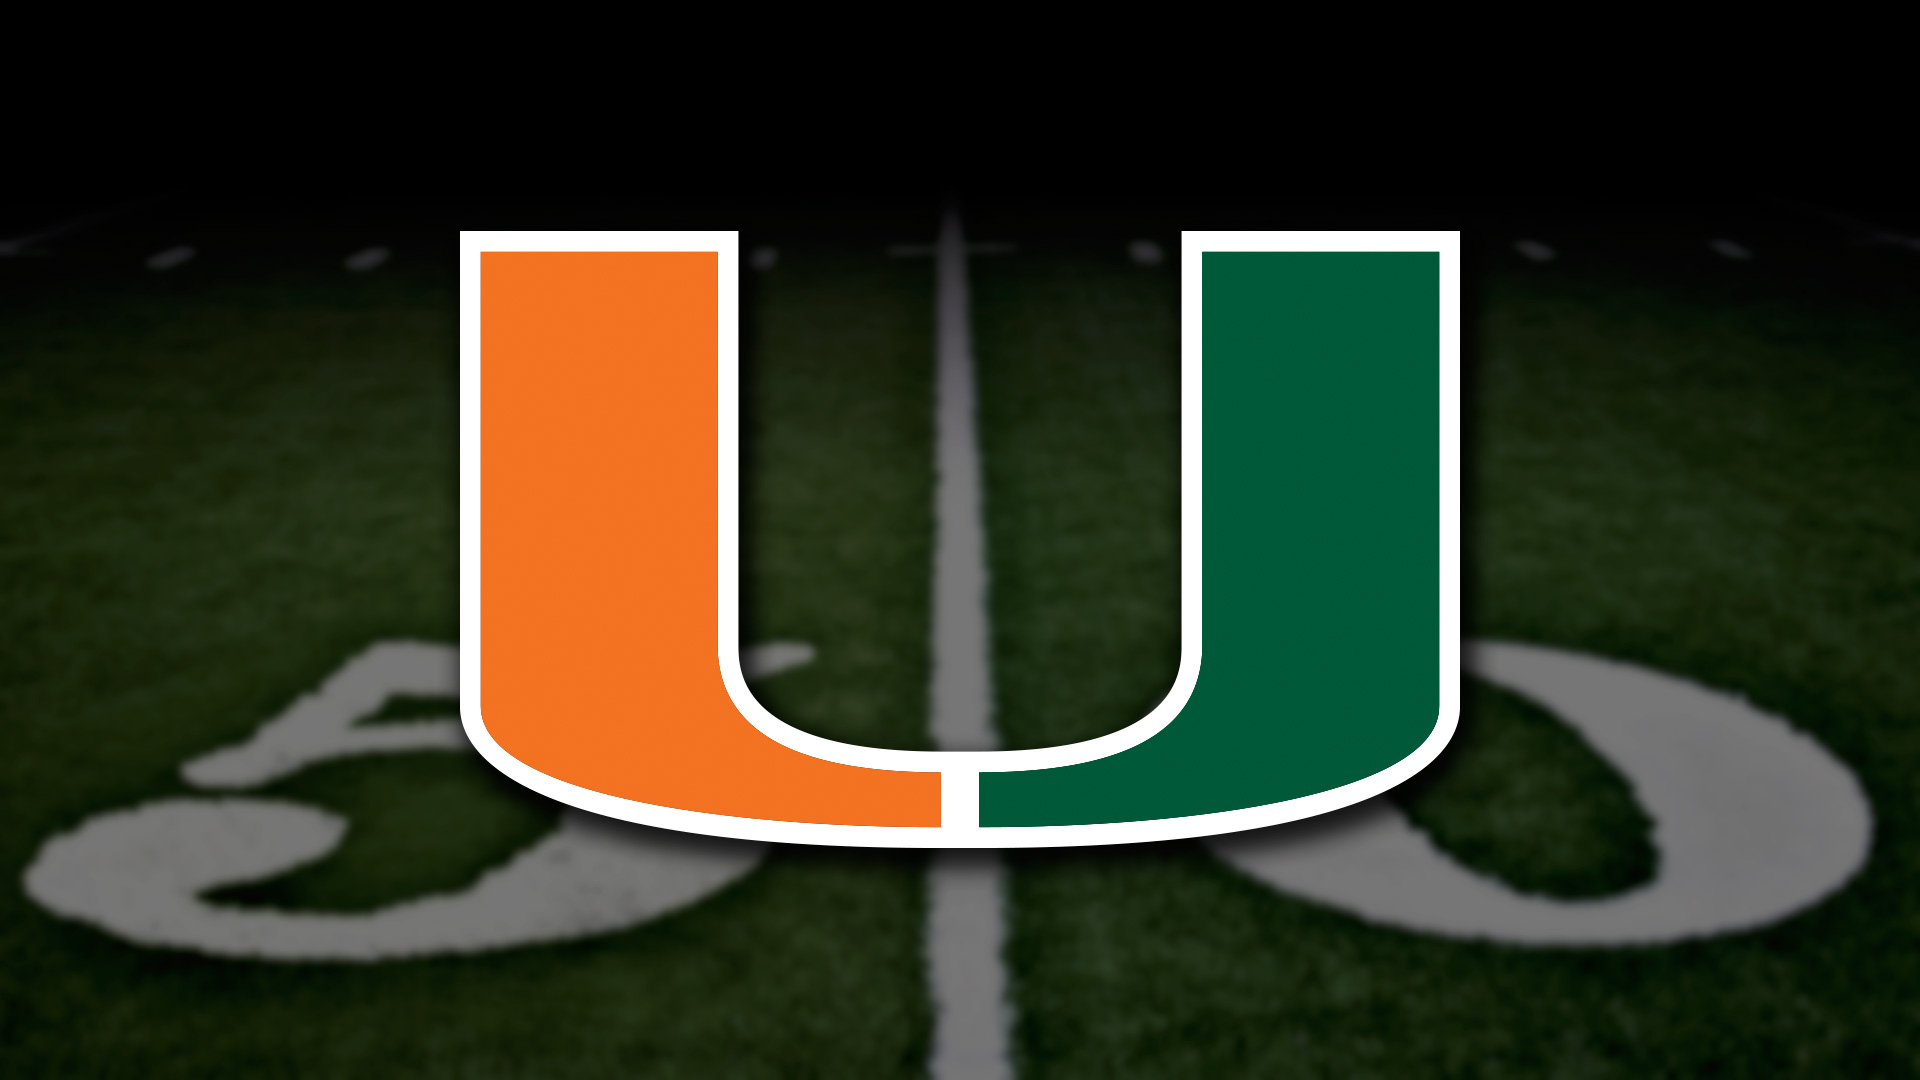 Video of officer punching woman at Miami football game under investigation